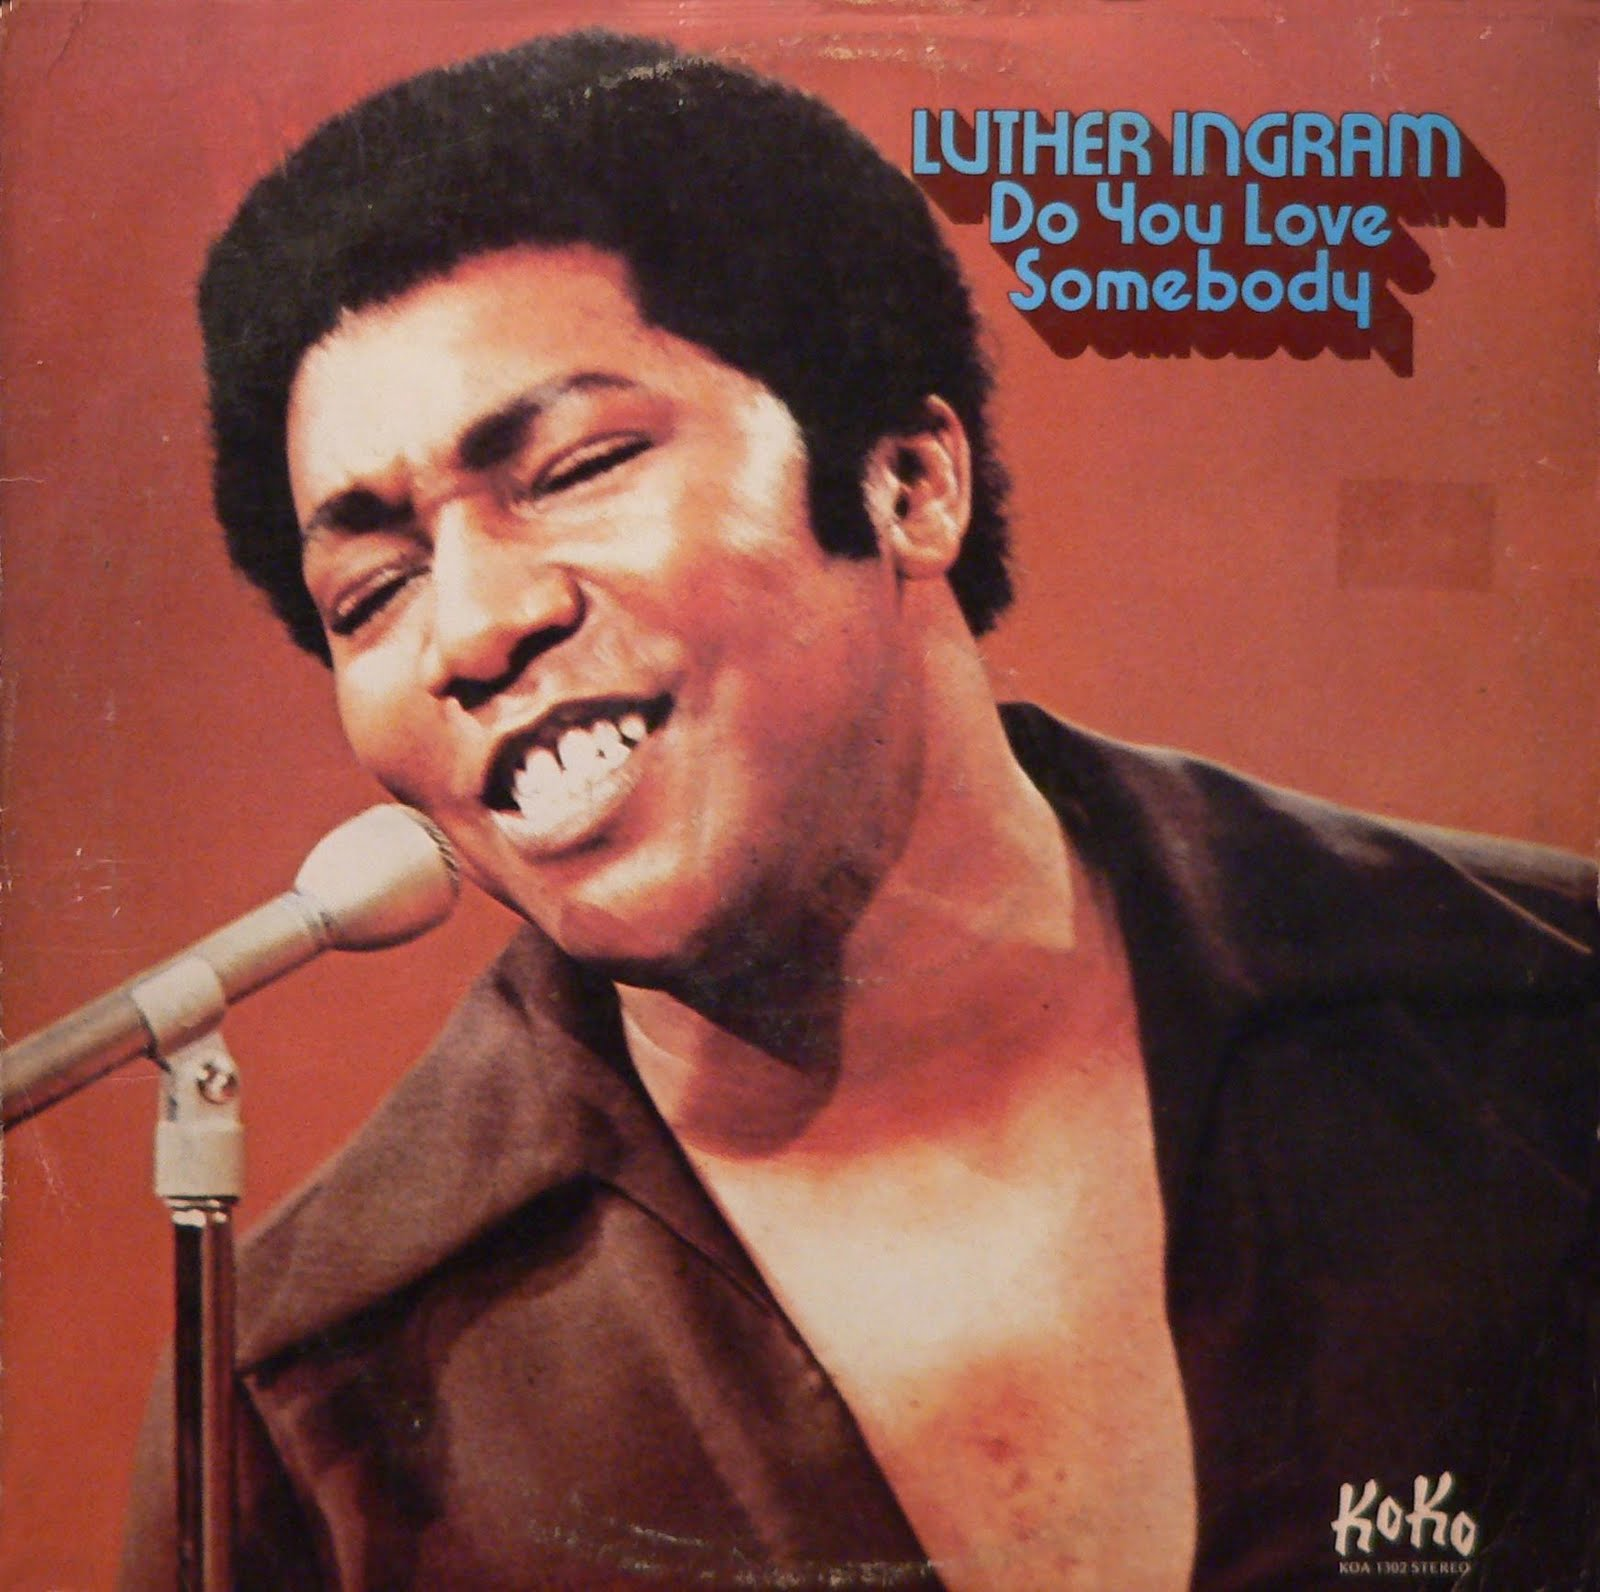 Luther Ingram - Do You Love Somebody